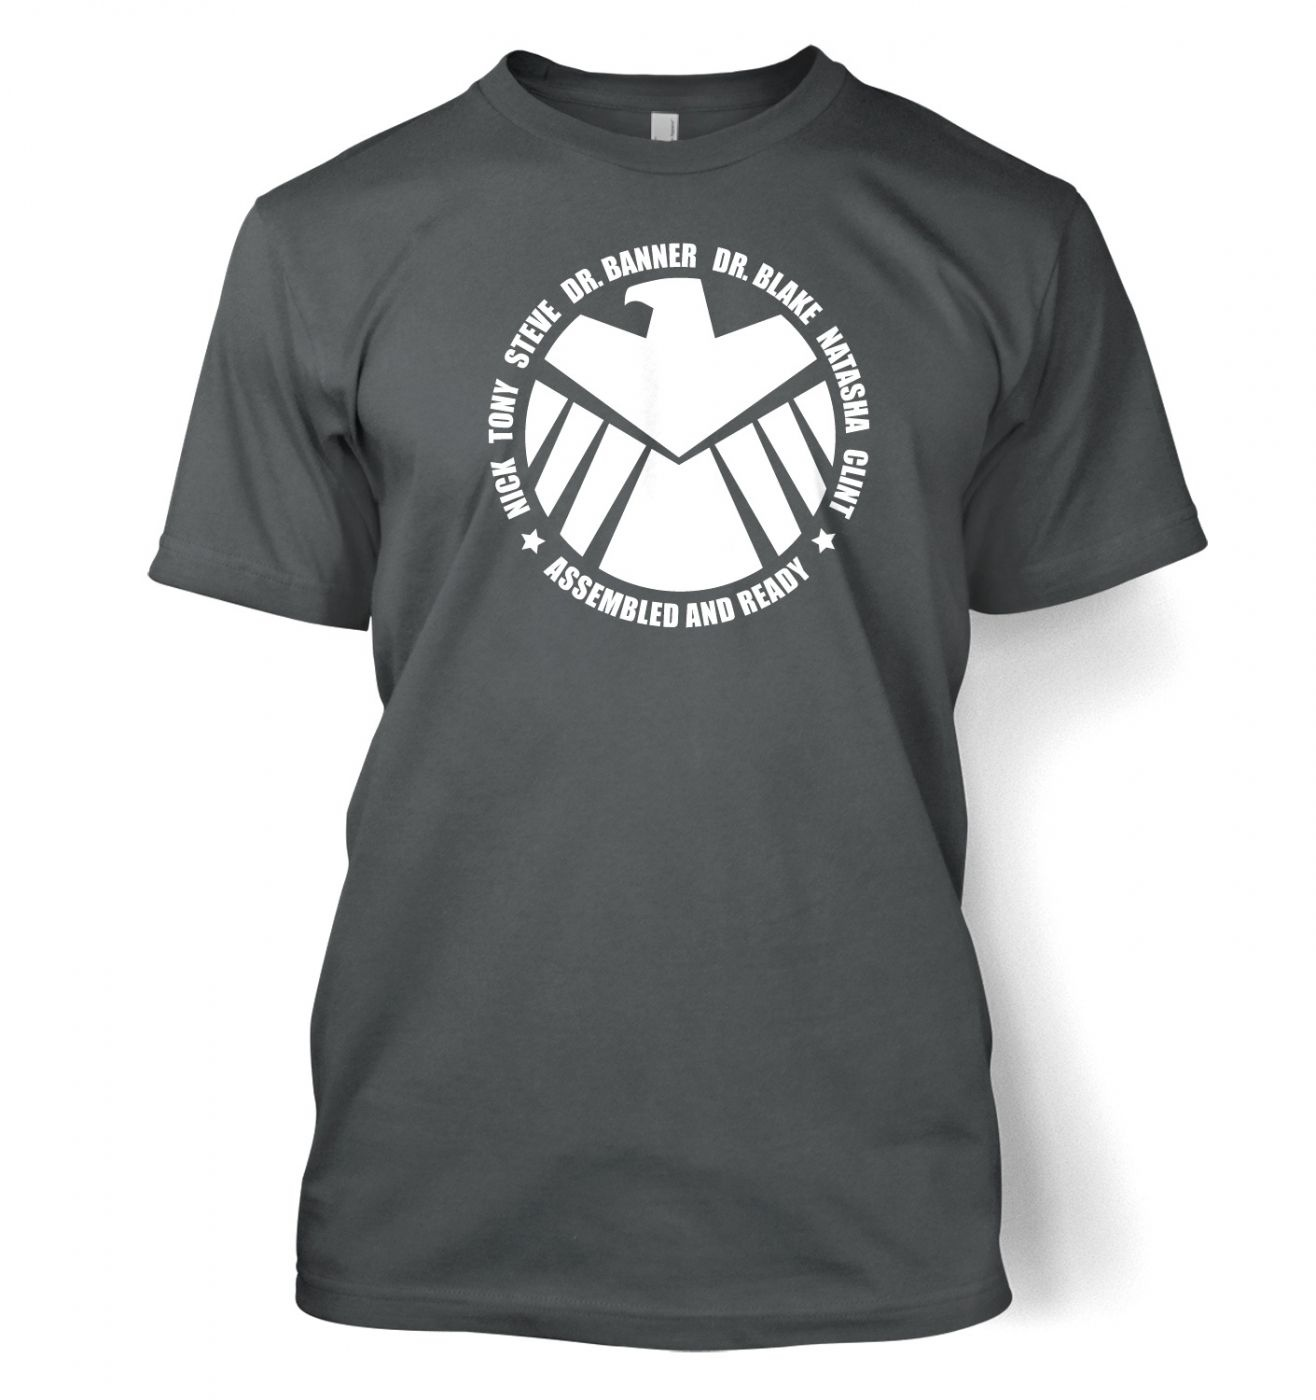 Assembled And Ready men's t-shirt